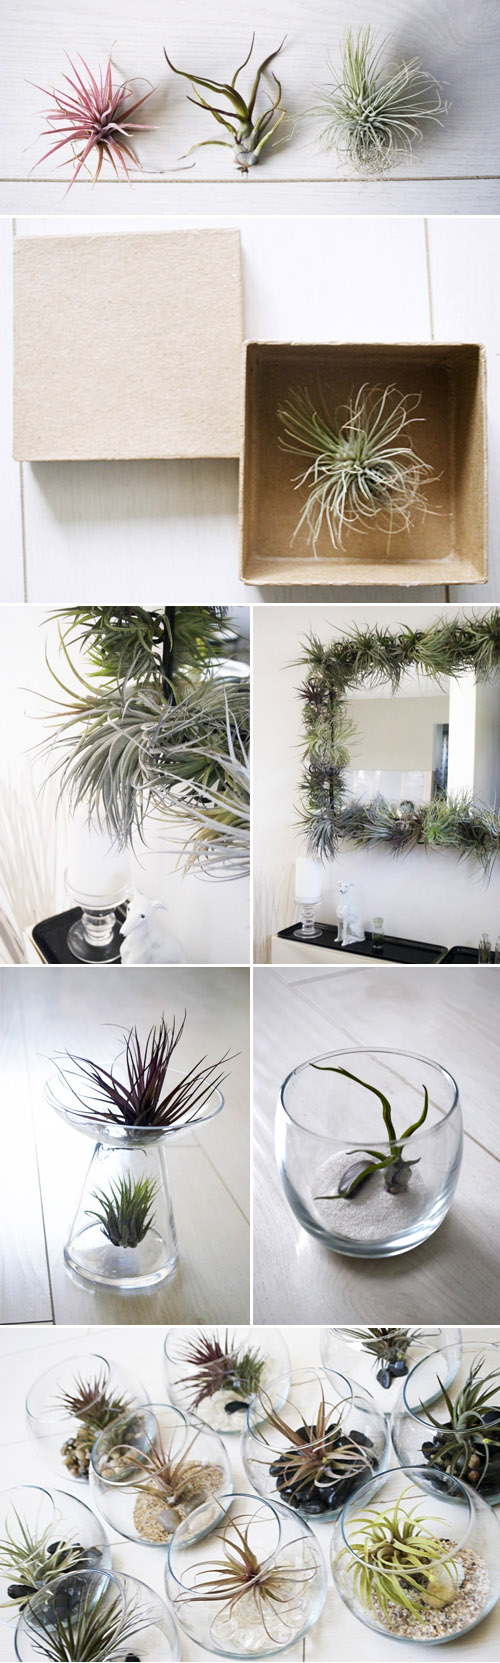 beautiful tillandsia air plants from To Hold, creative botanical wedding favors and decor